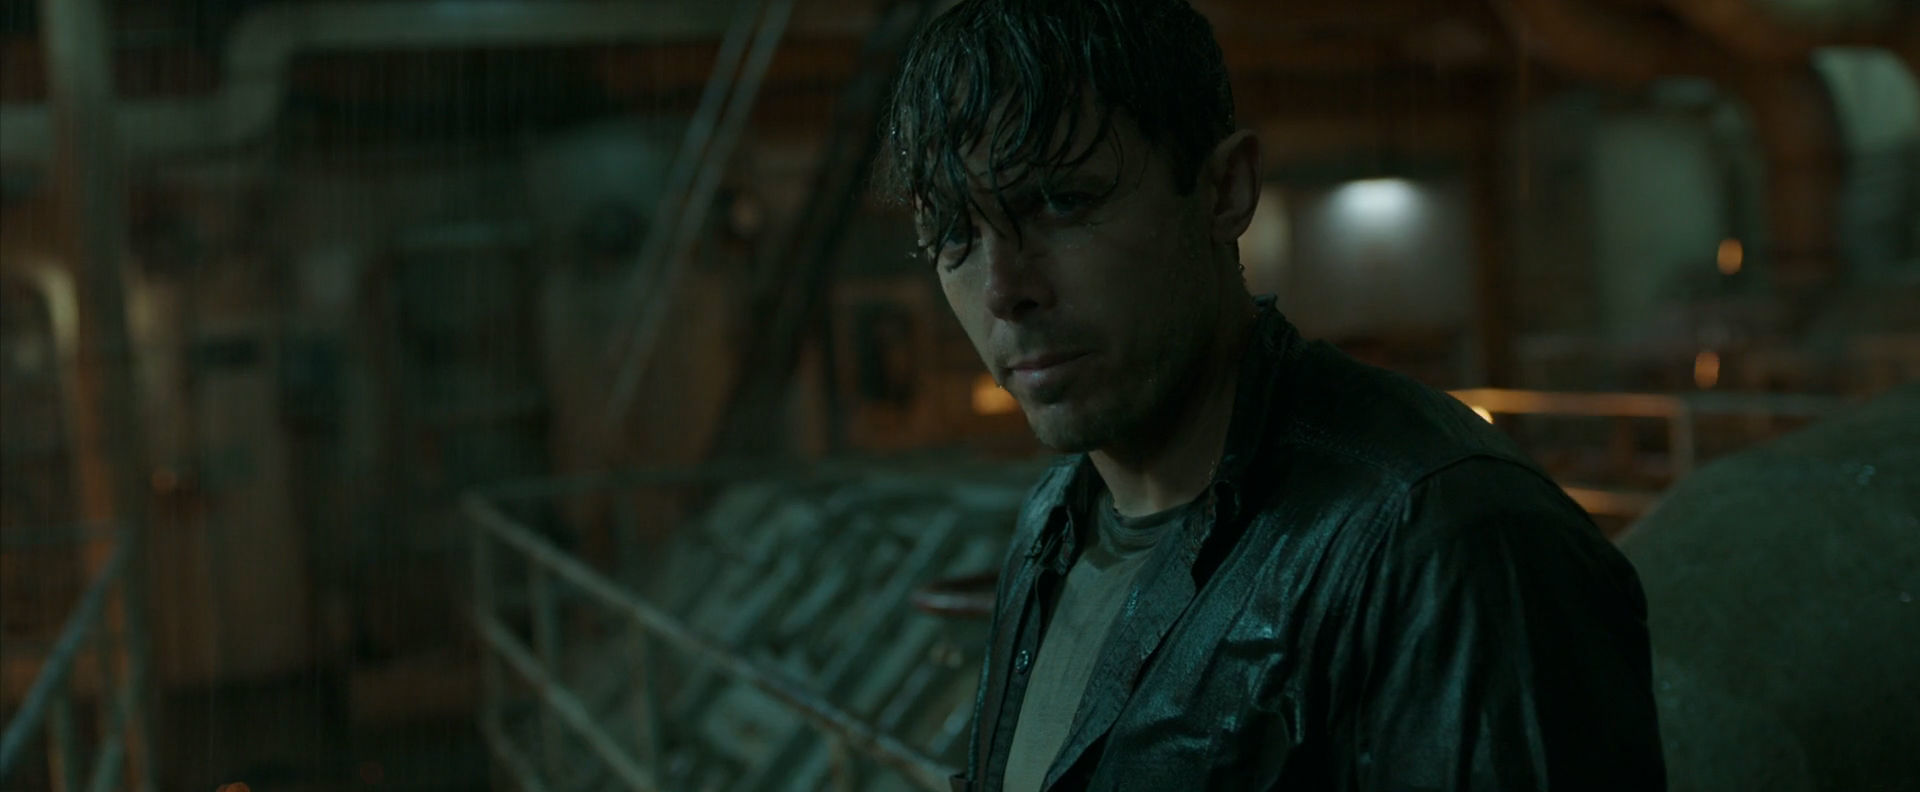 Watch The New Trailer For The Finest Hours!